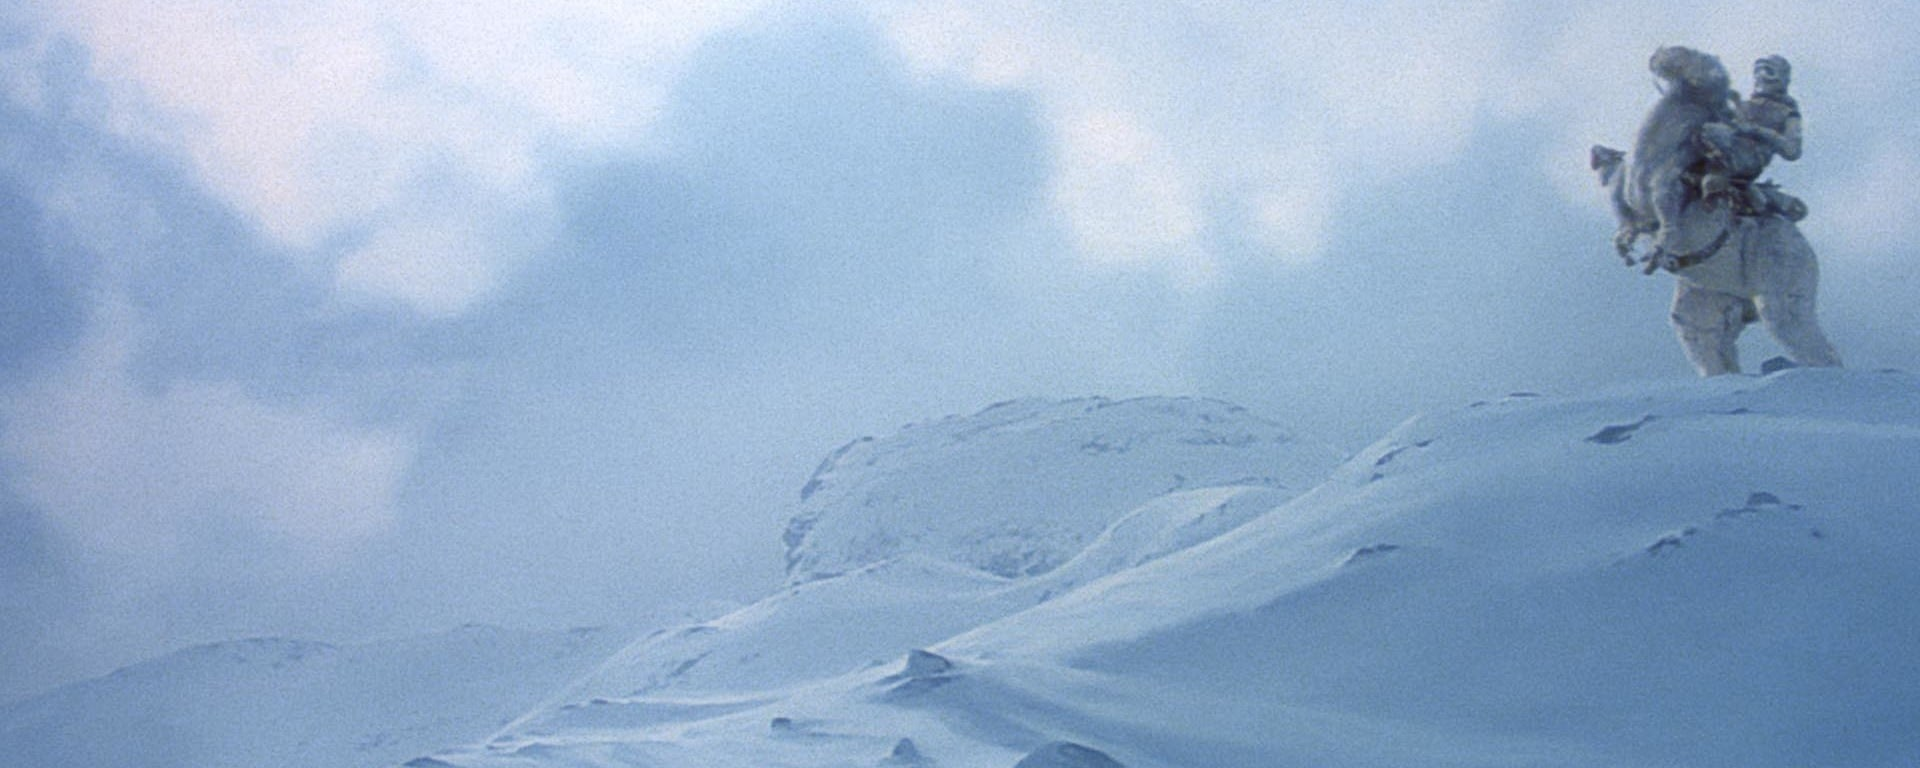 Star Wars Hoth video call background